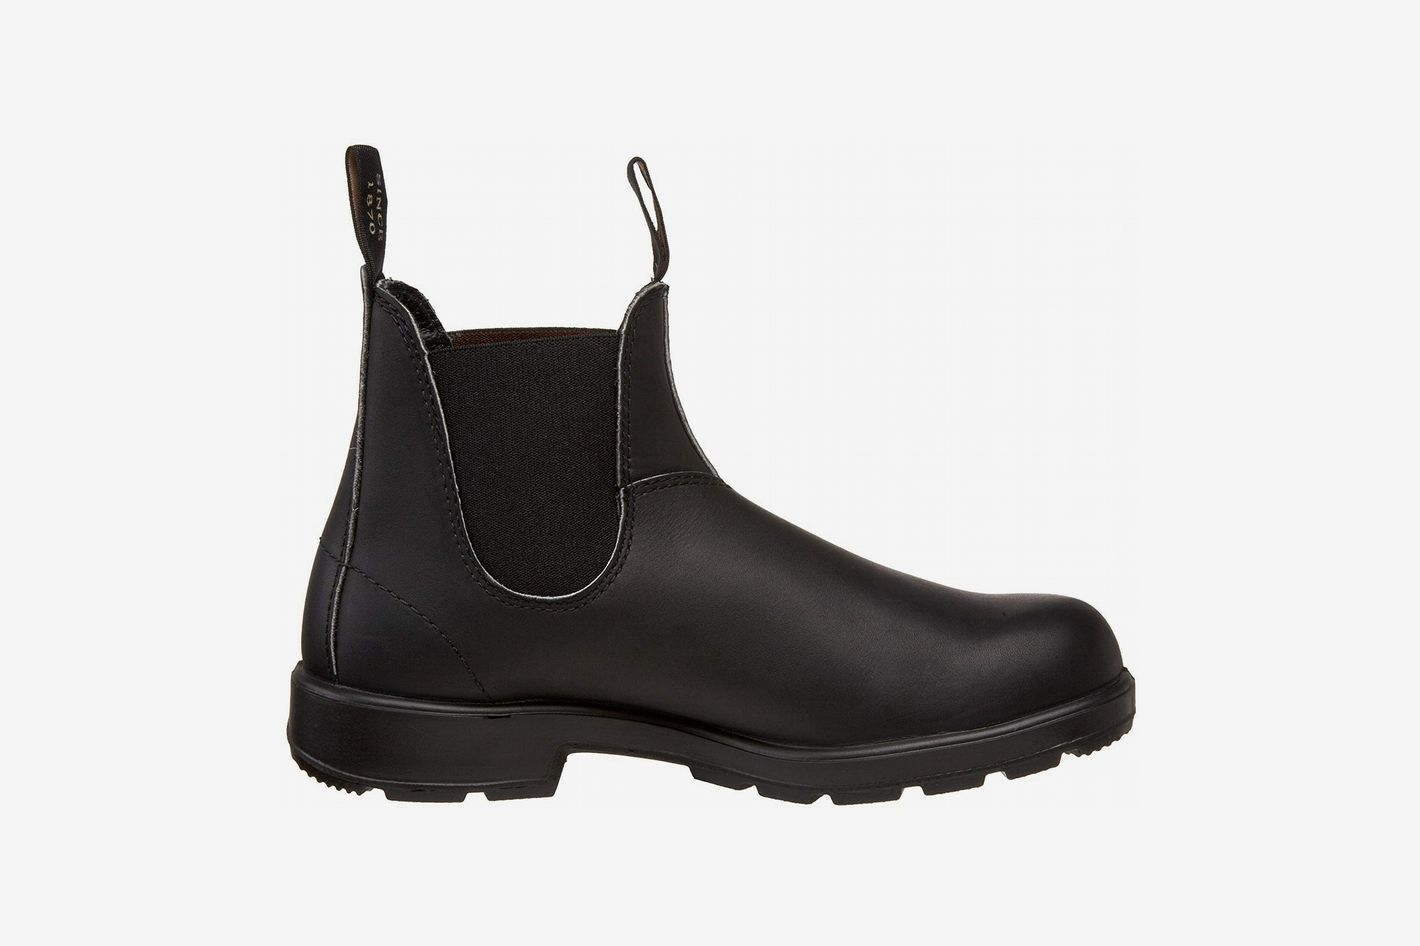 ad905d26590d10 12 Best Men s Rain Boots  2019